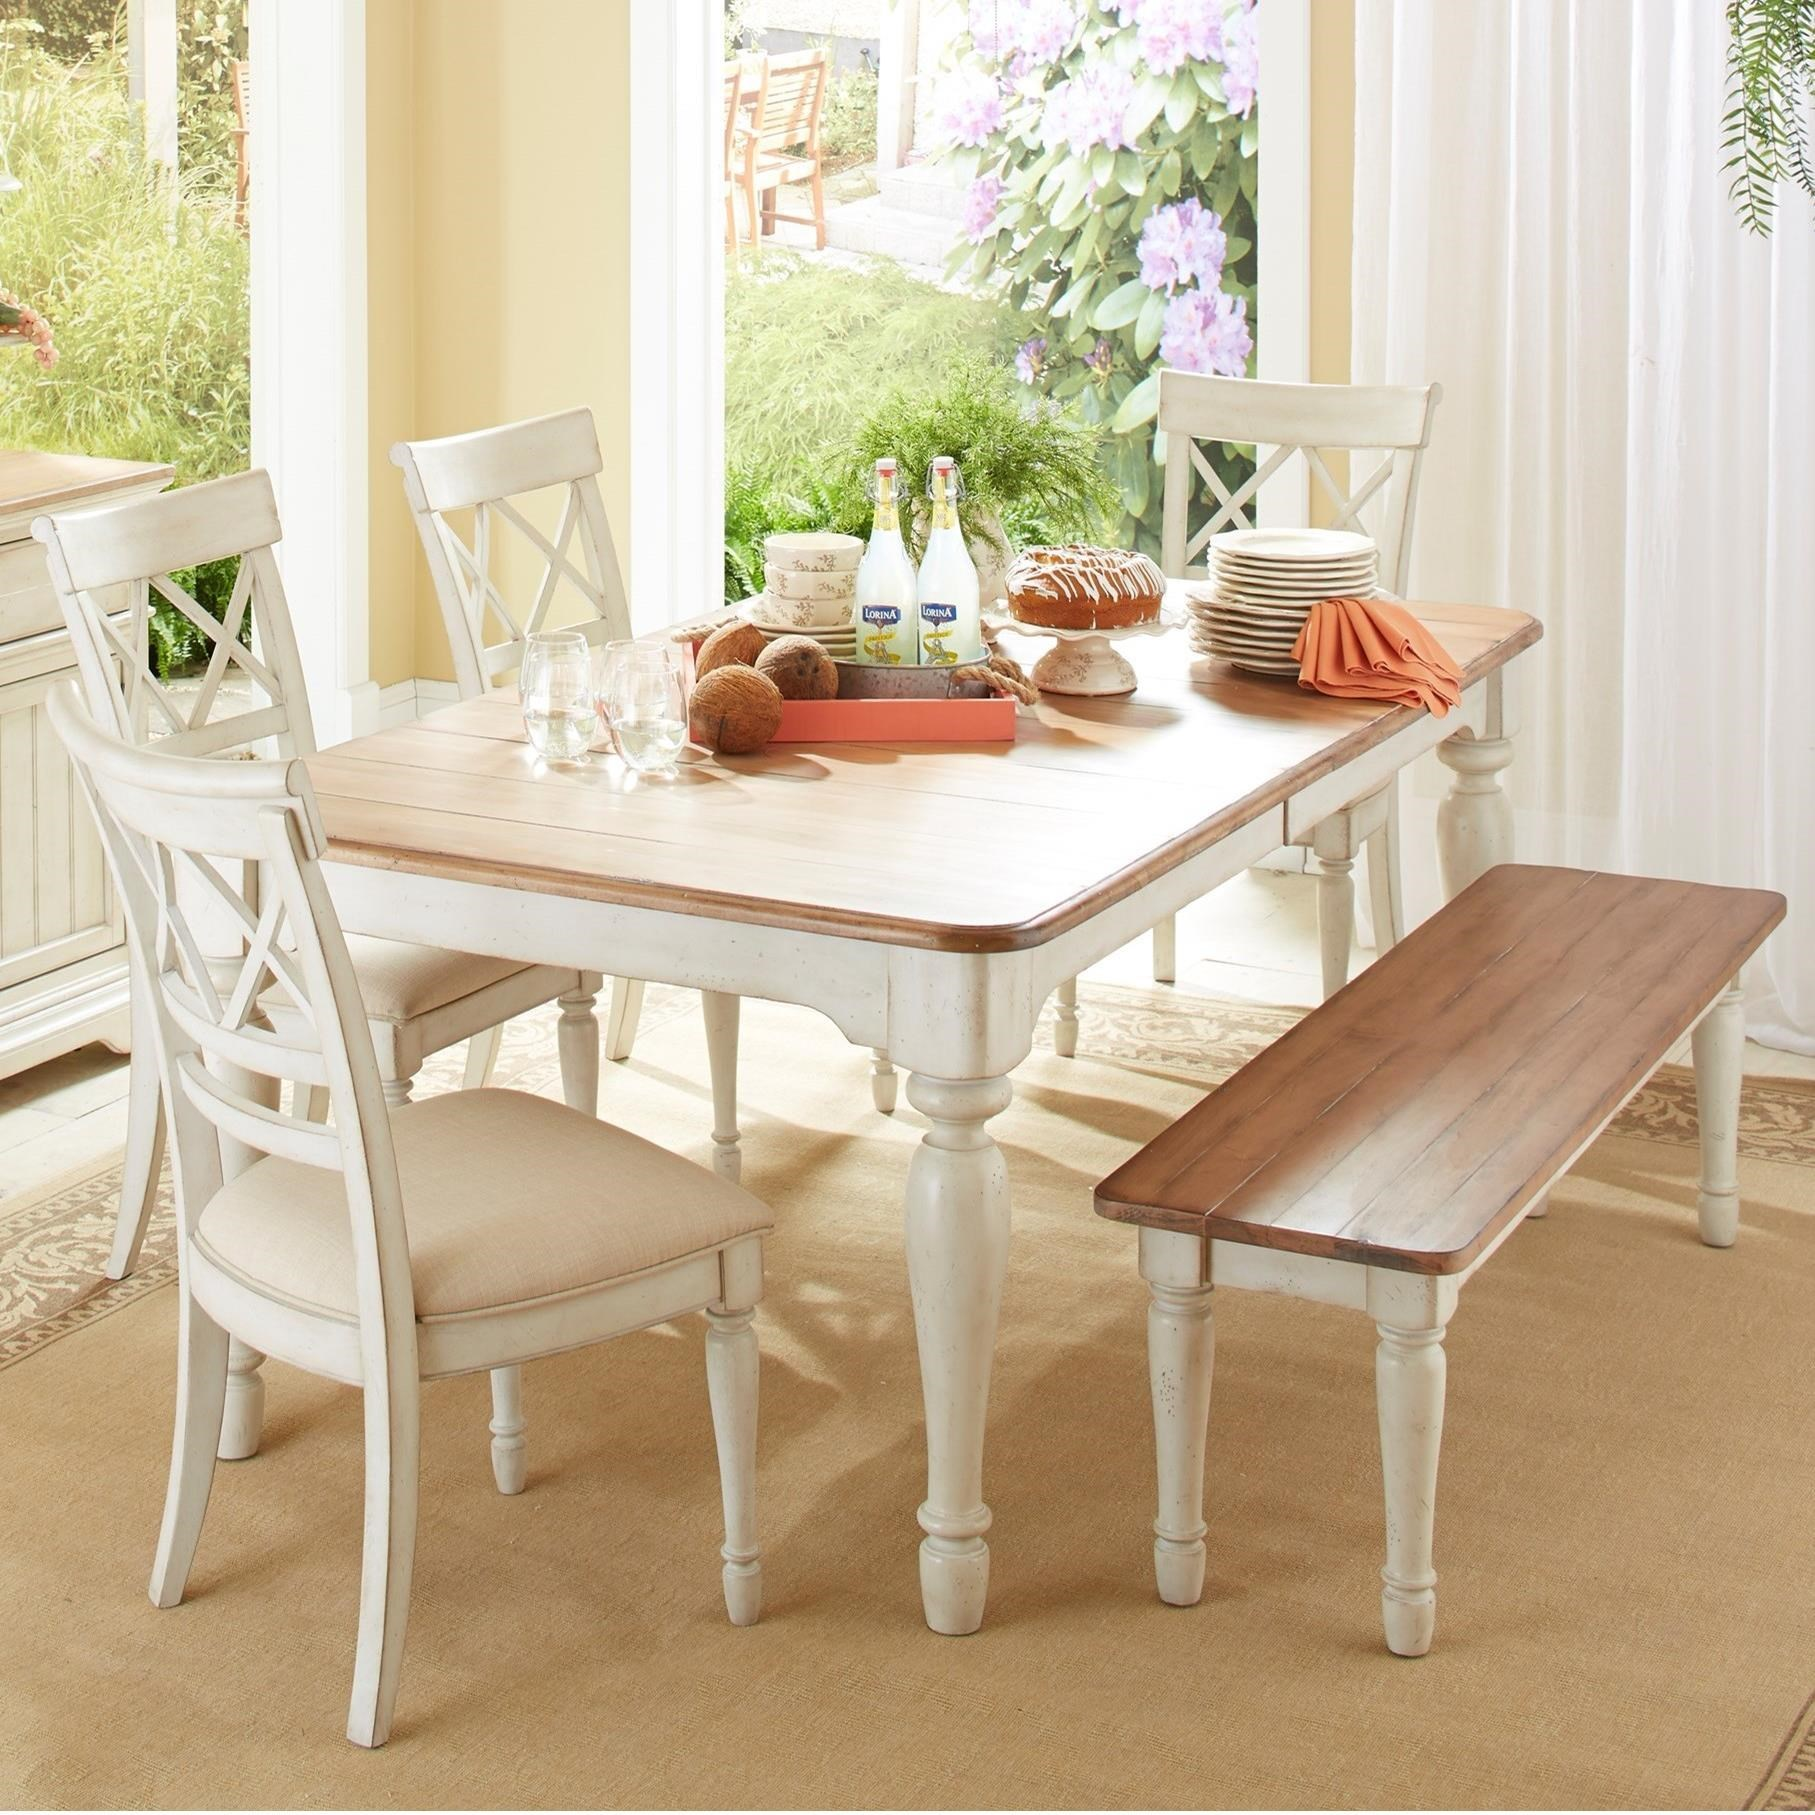 cottage dining room tables. Cresent Fine Furniture Cottage6 Piece Table And Chair Set With Bench Cottage Dining Room Tables S